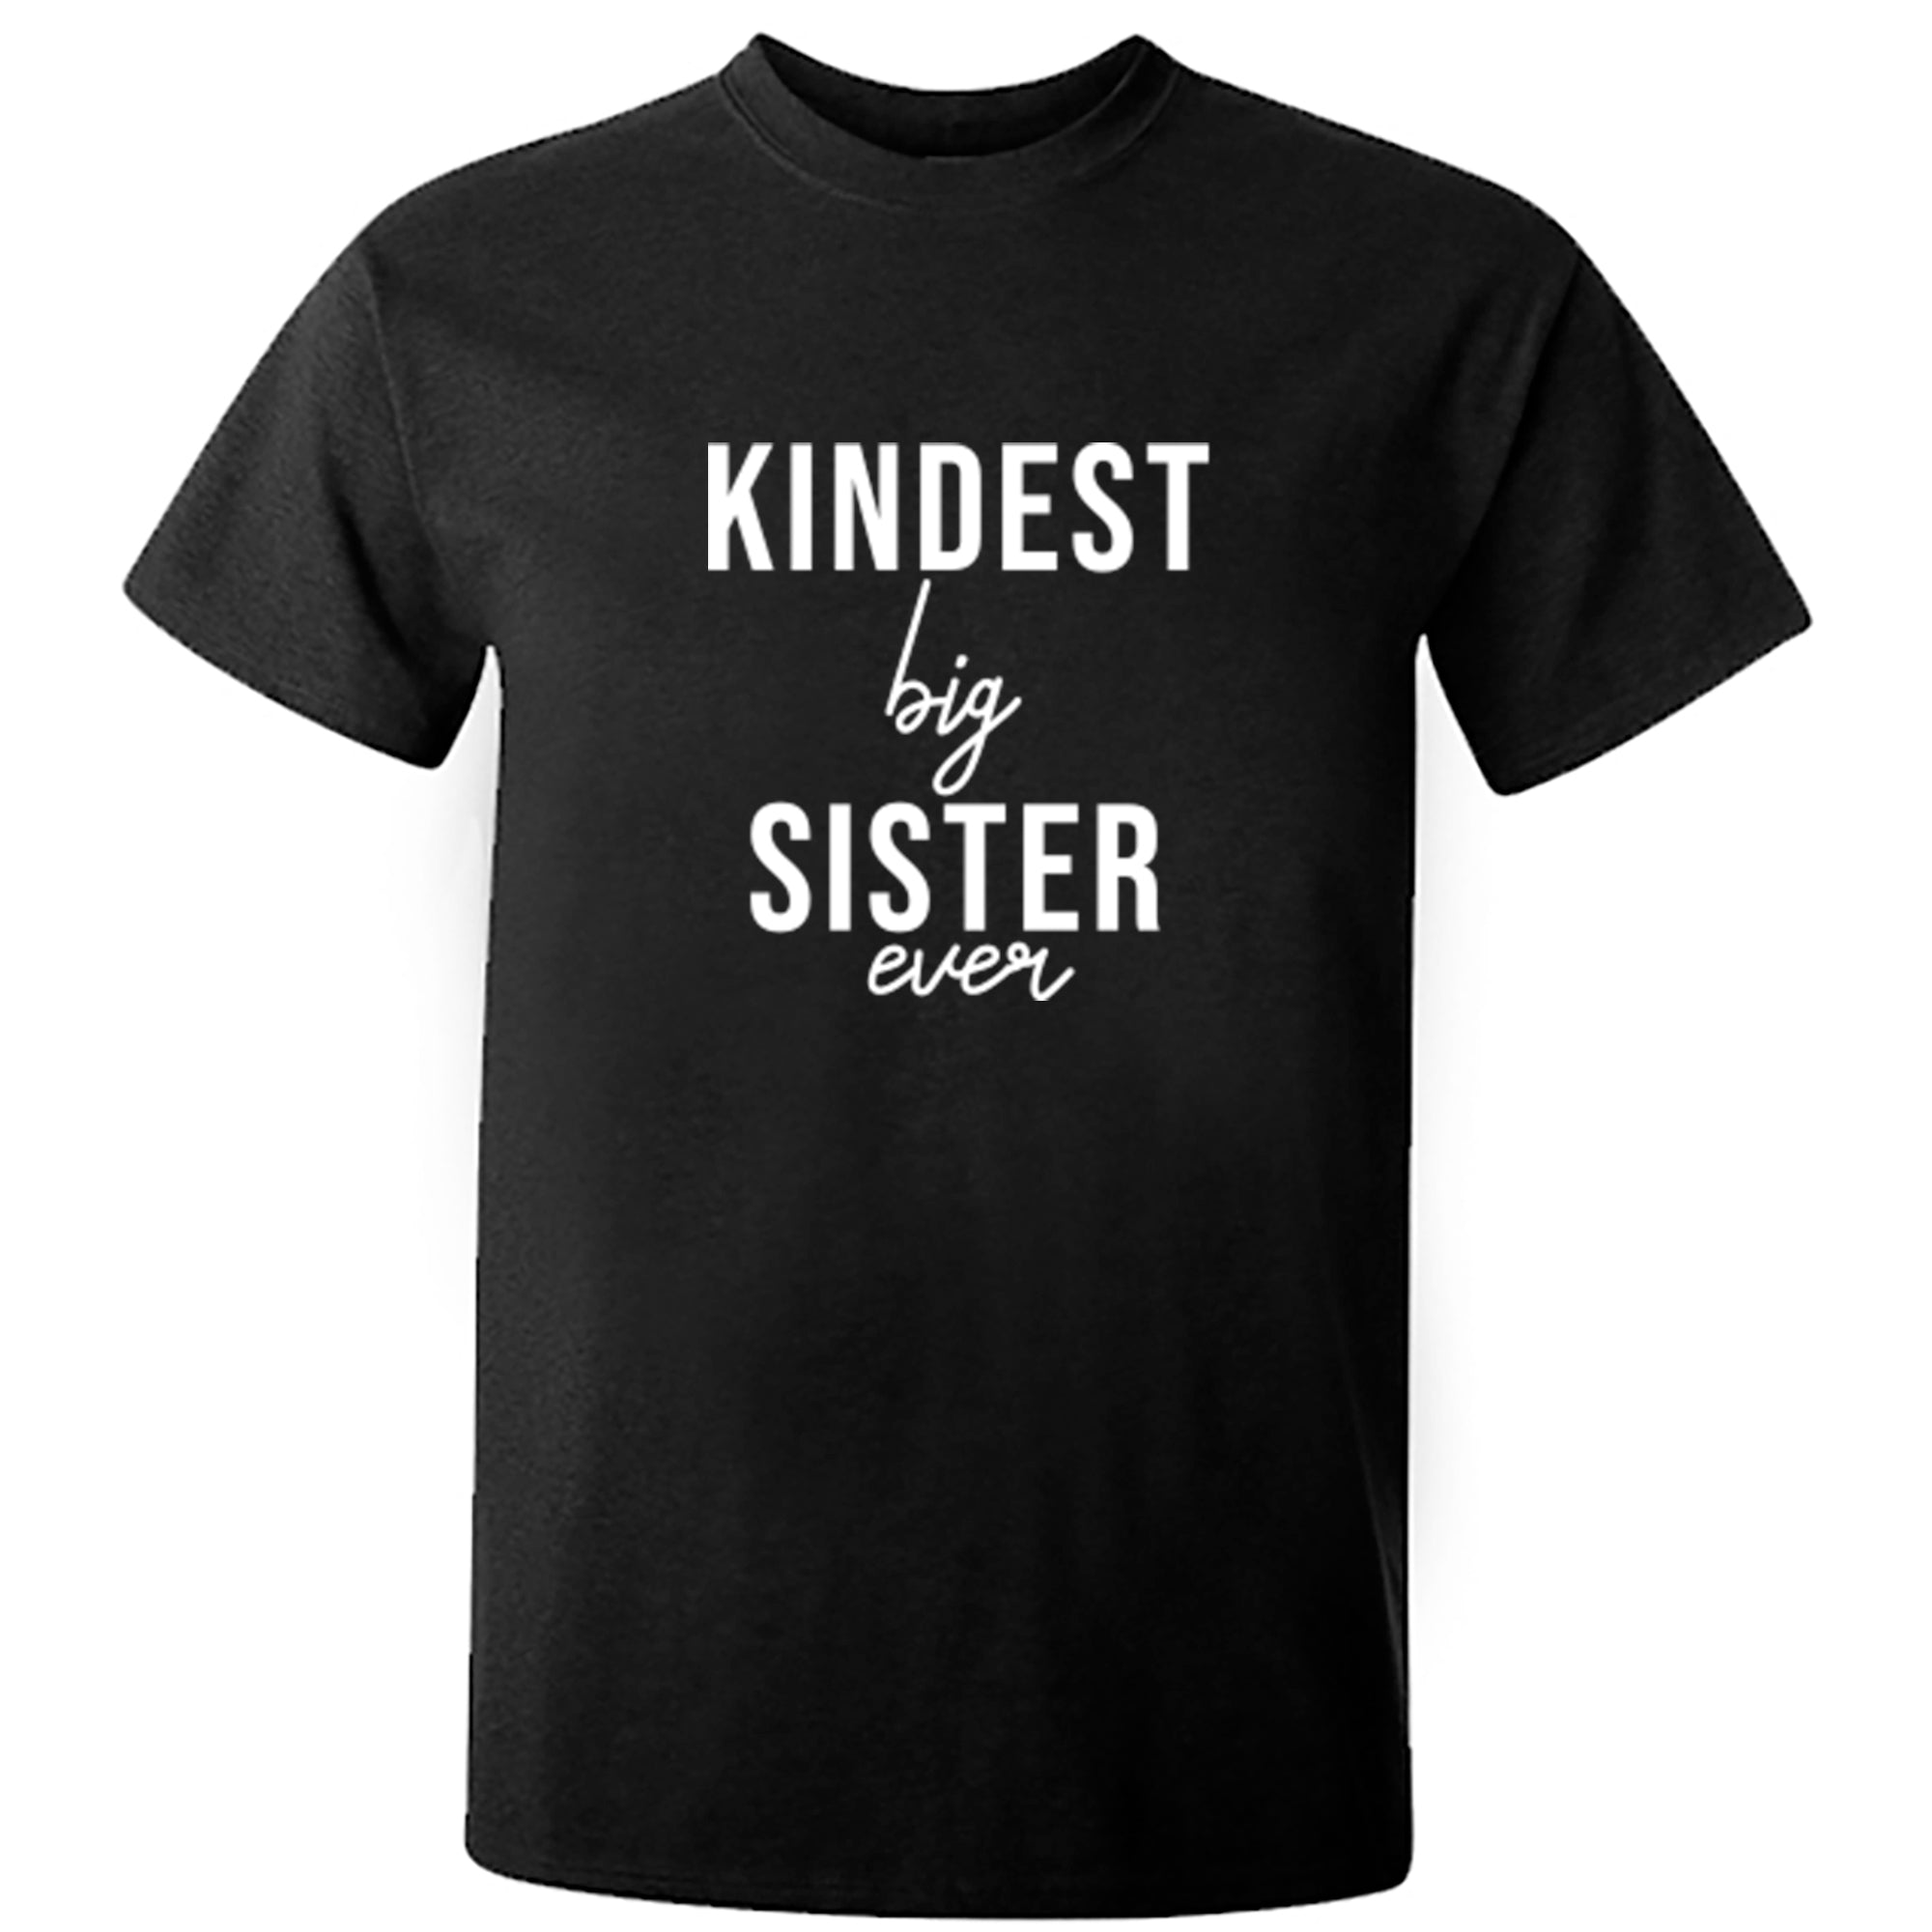 Kindest Big Sister Ever Unisex Fit T-Shirt S0513 - Illustrated Identity Ltd.